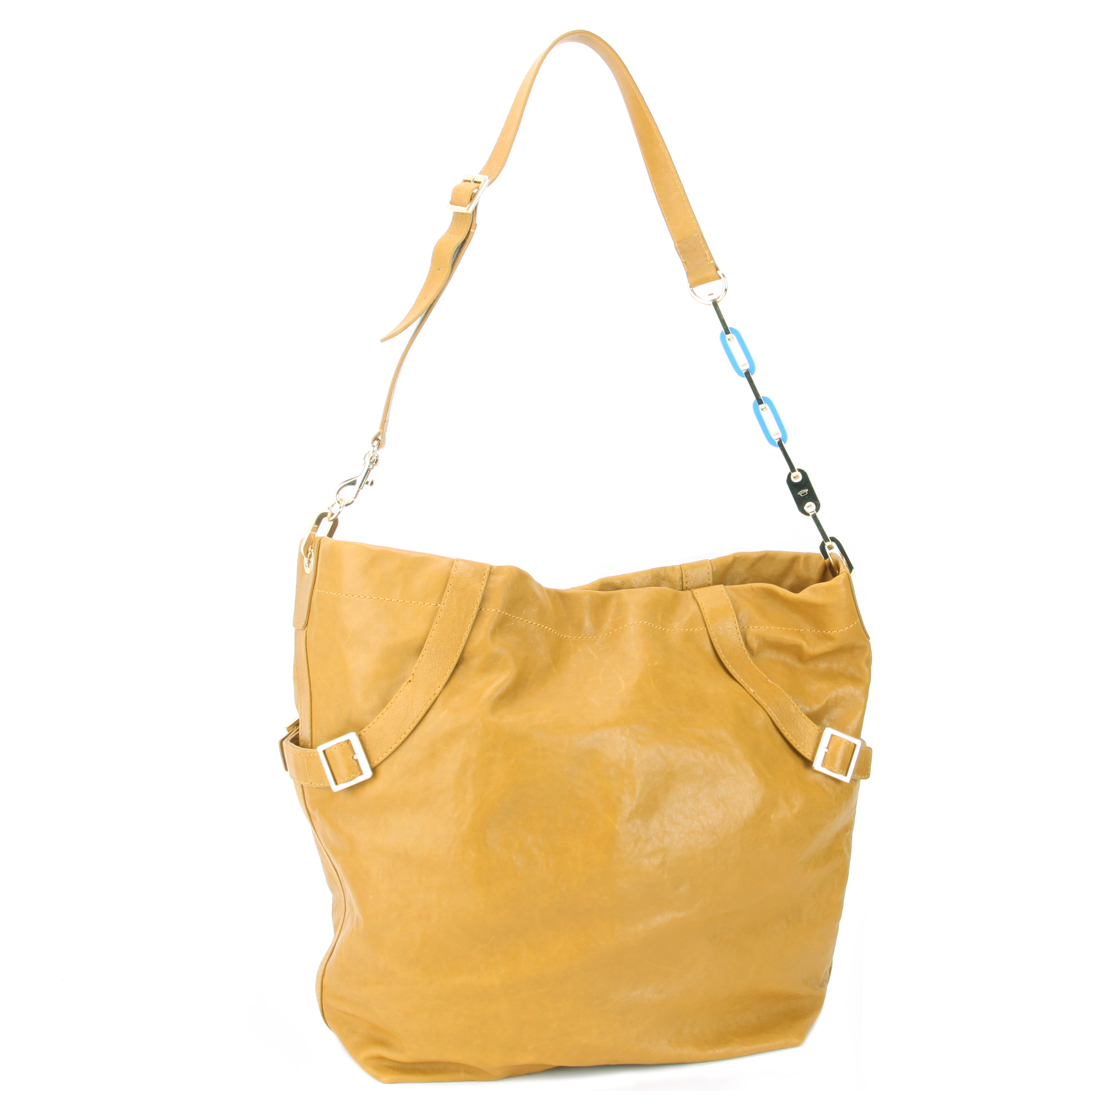 Juicy Couture Large Hobo Handbag-Pineapple